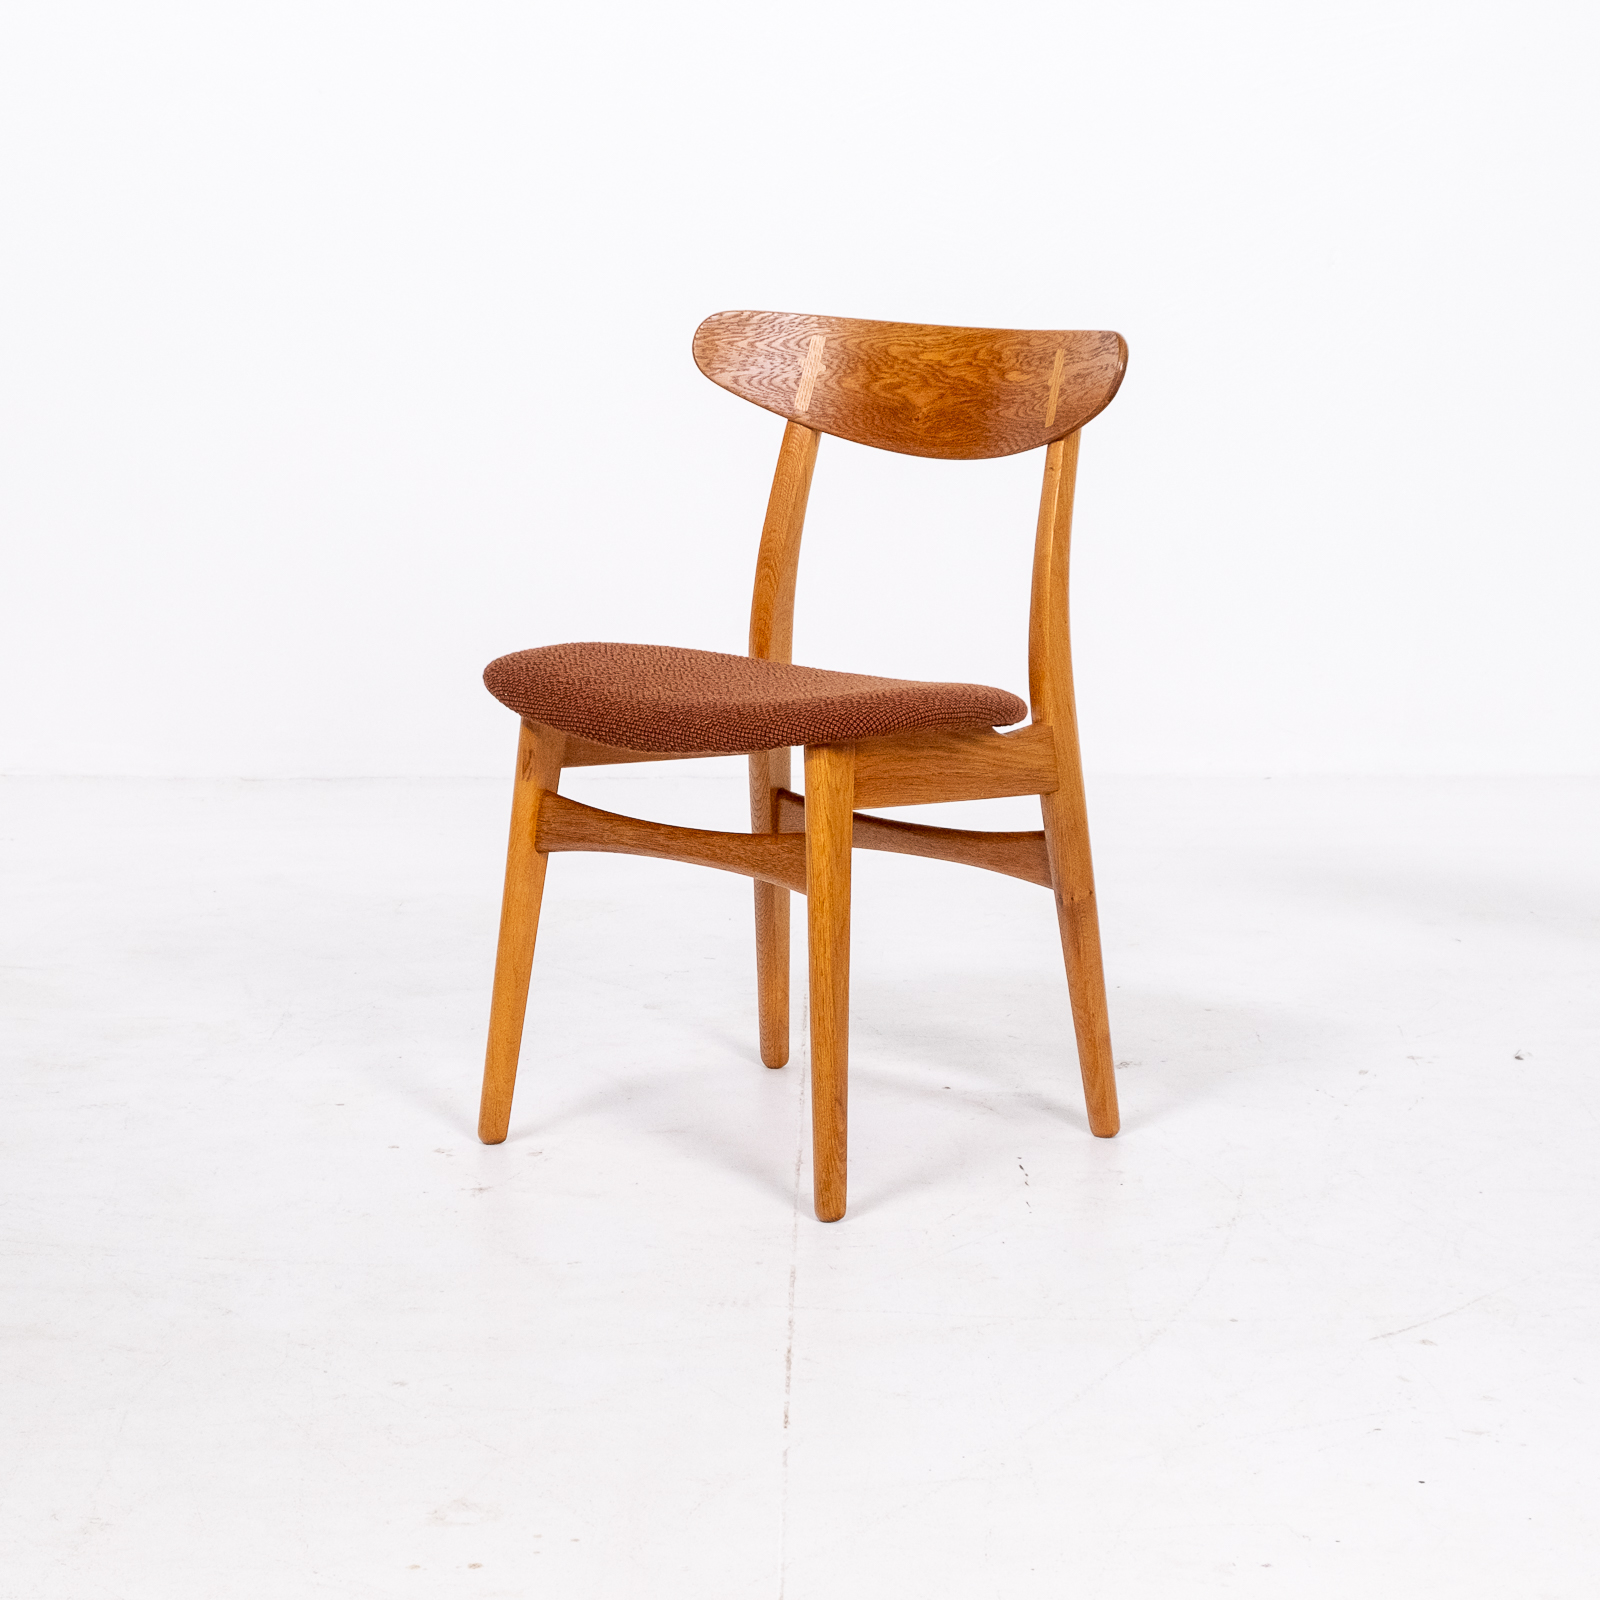 Set Of 4 Ch 30 Dining Chairs By Hans Wegner For Carl Hansen And Son In Oak And Kvadart Upholstery, 1950s, Denmark 08